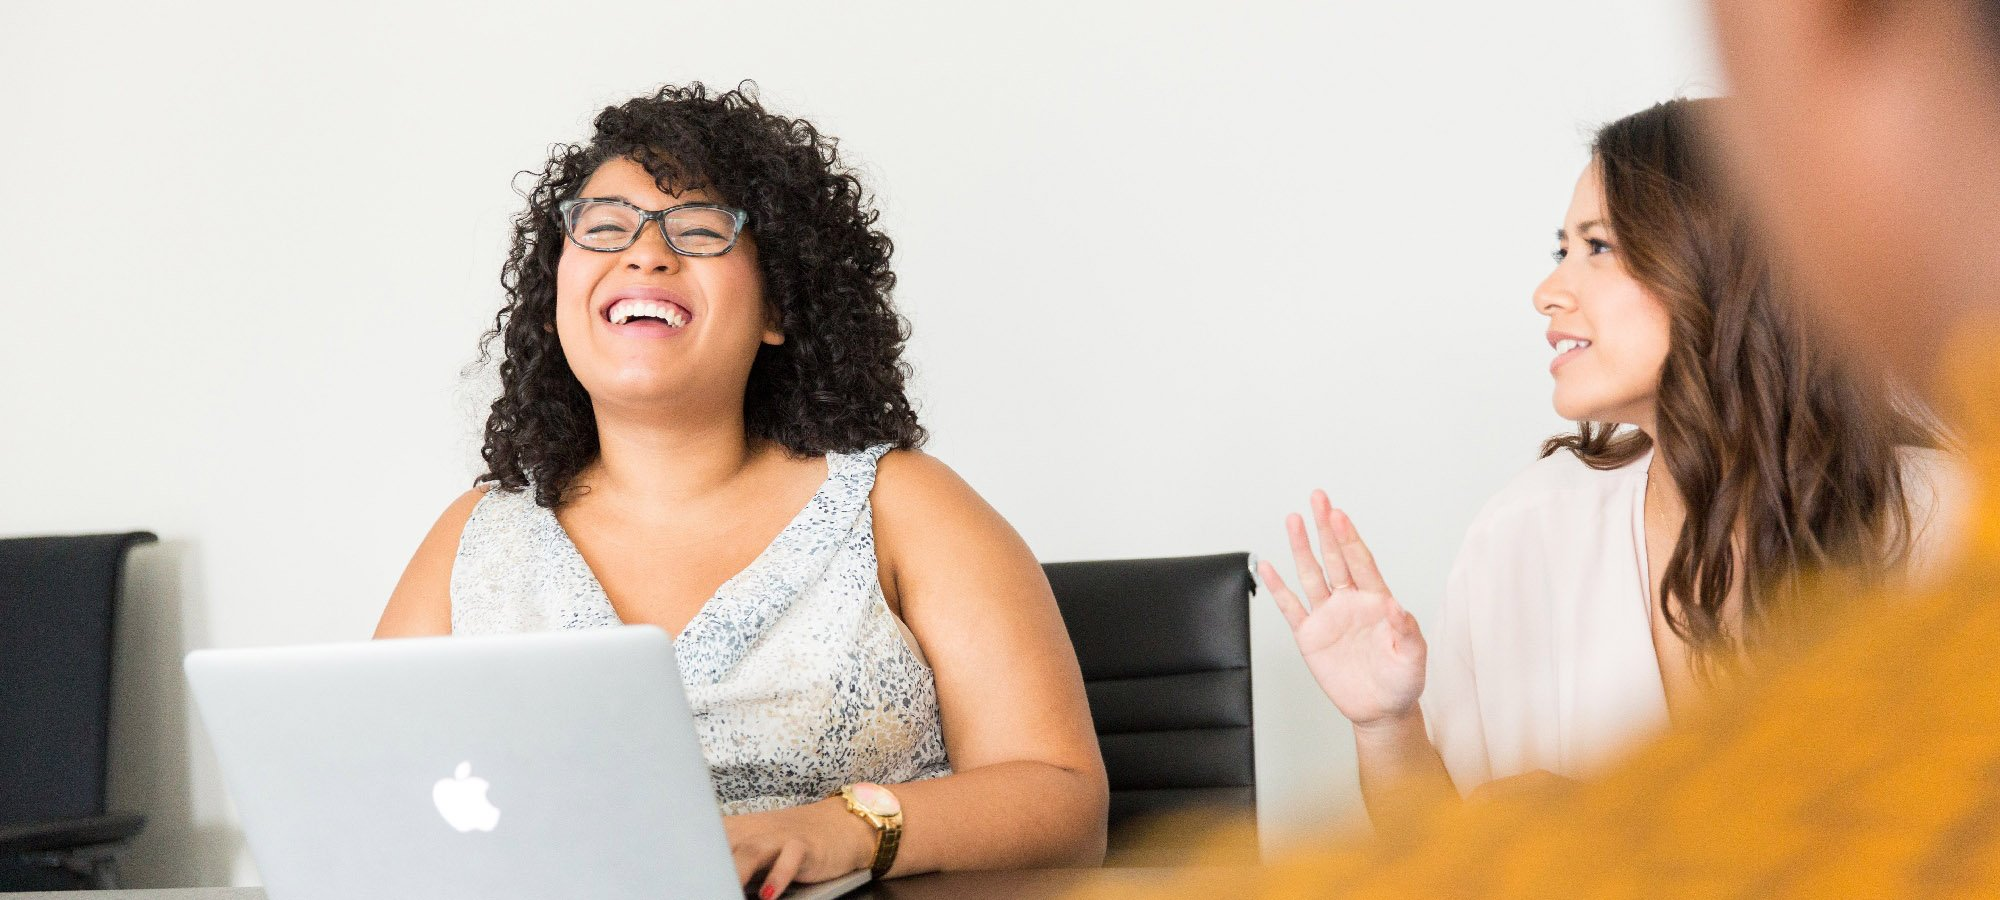 woman laughing mazevo meeting room scheduling-1